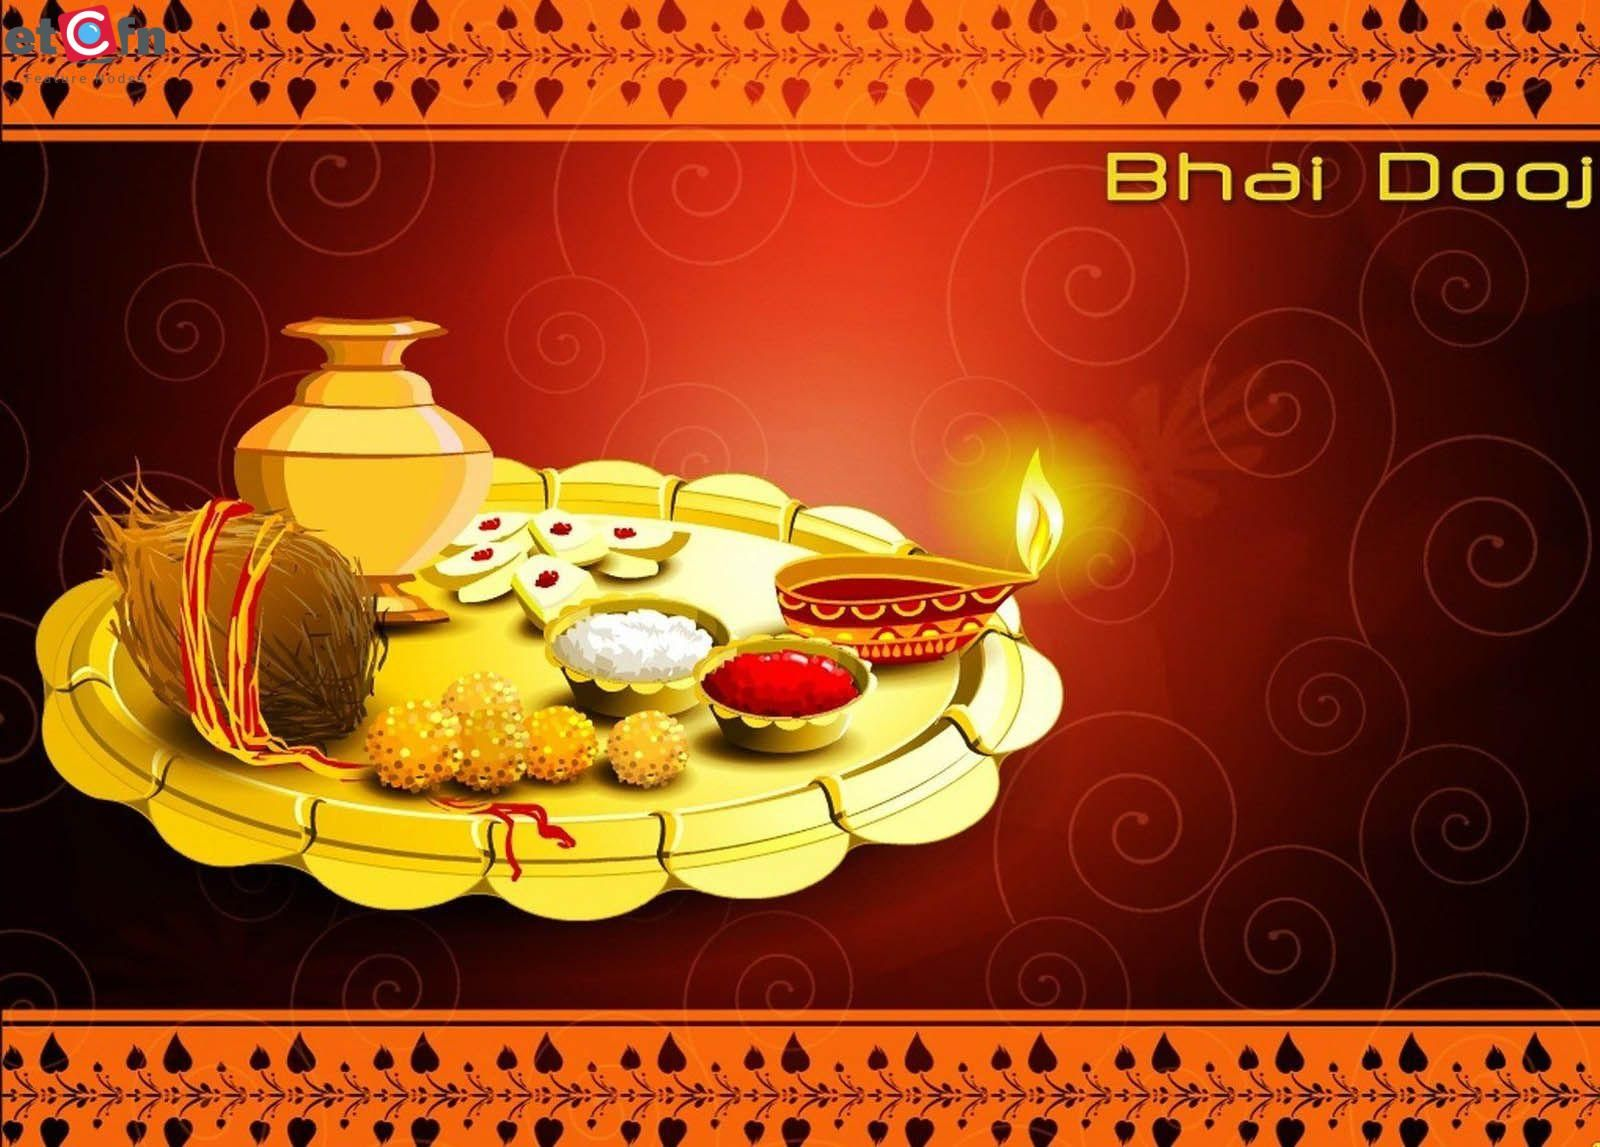 Bhai Dooj Images and Wishes 2016 Happy diwali images